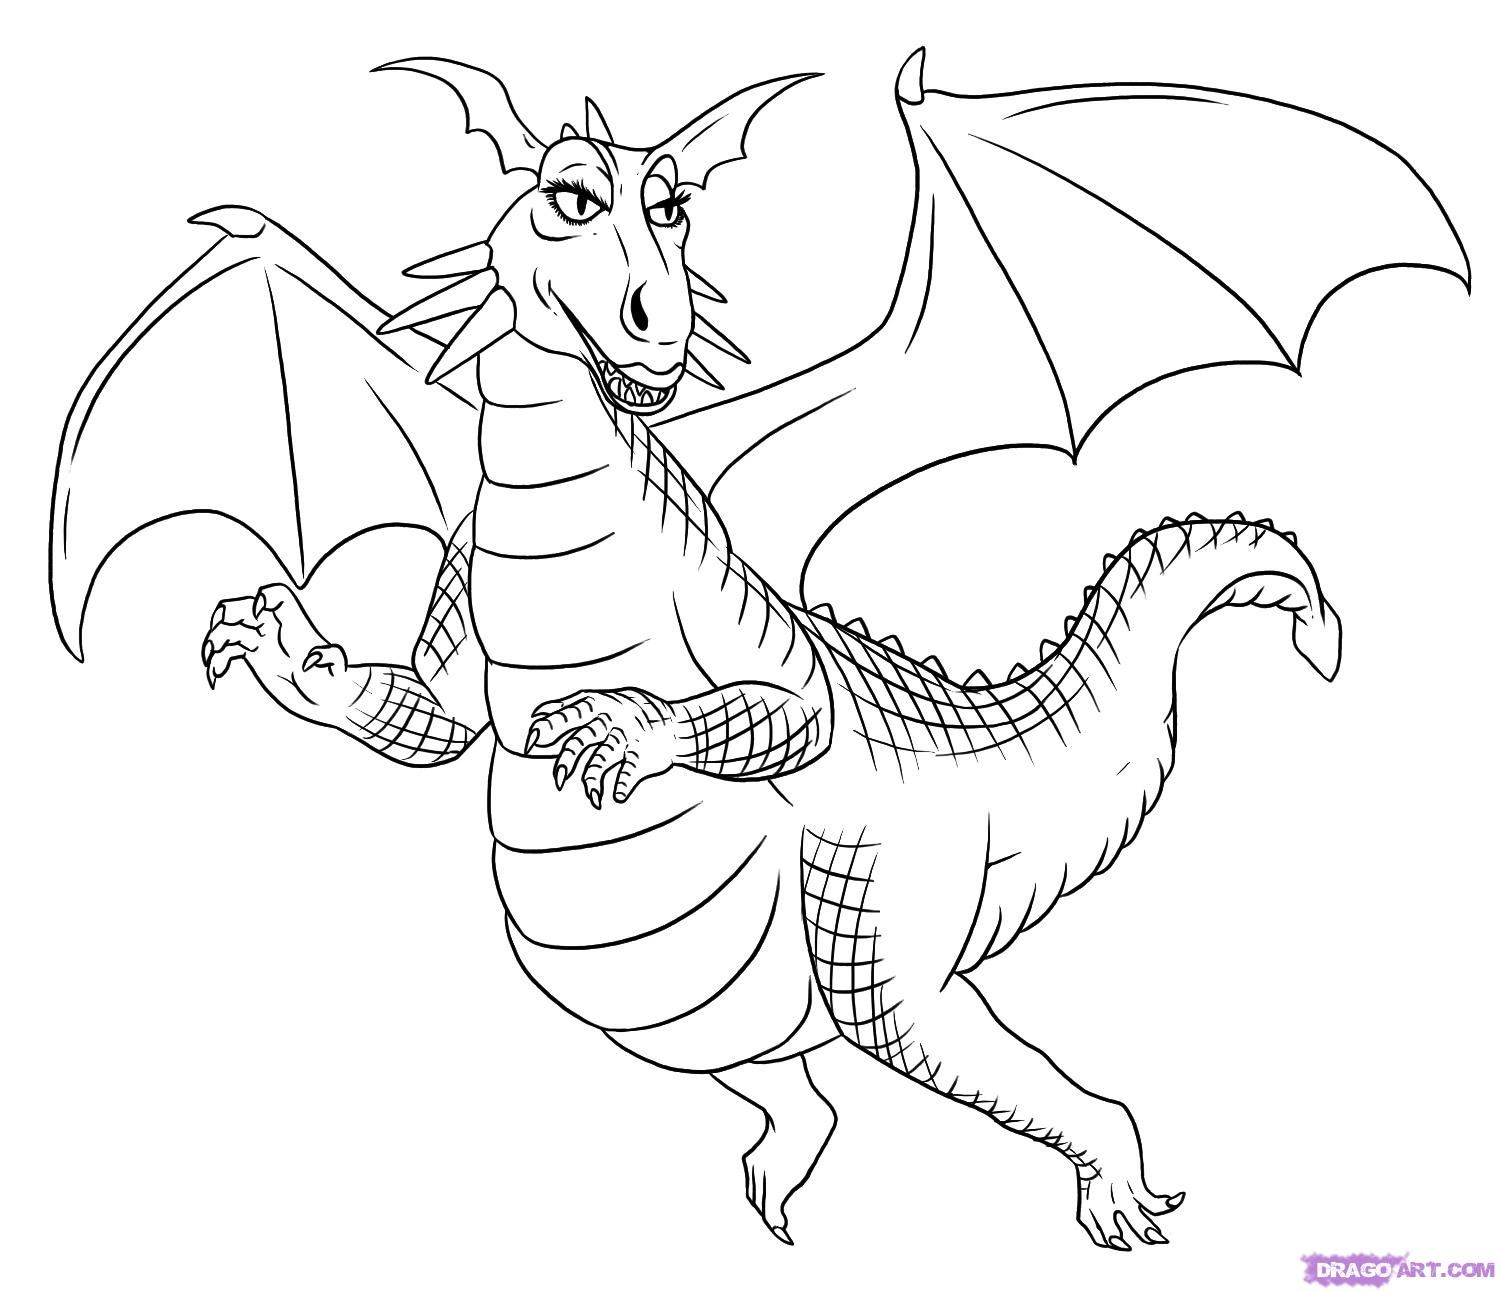 How to draw the Dragon from a mult-m Shrek with a pencil step by step